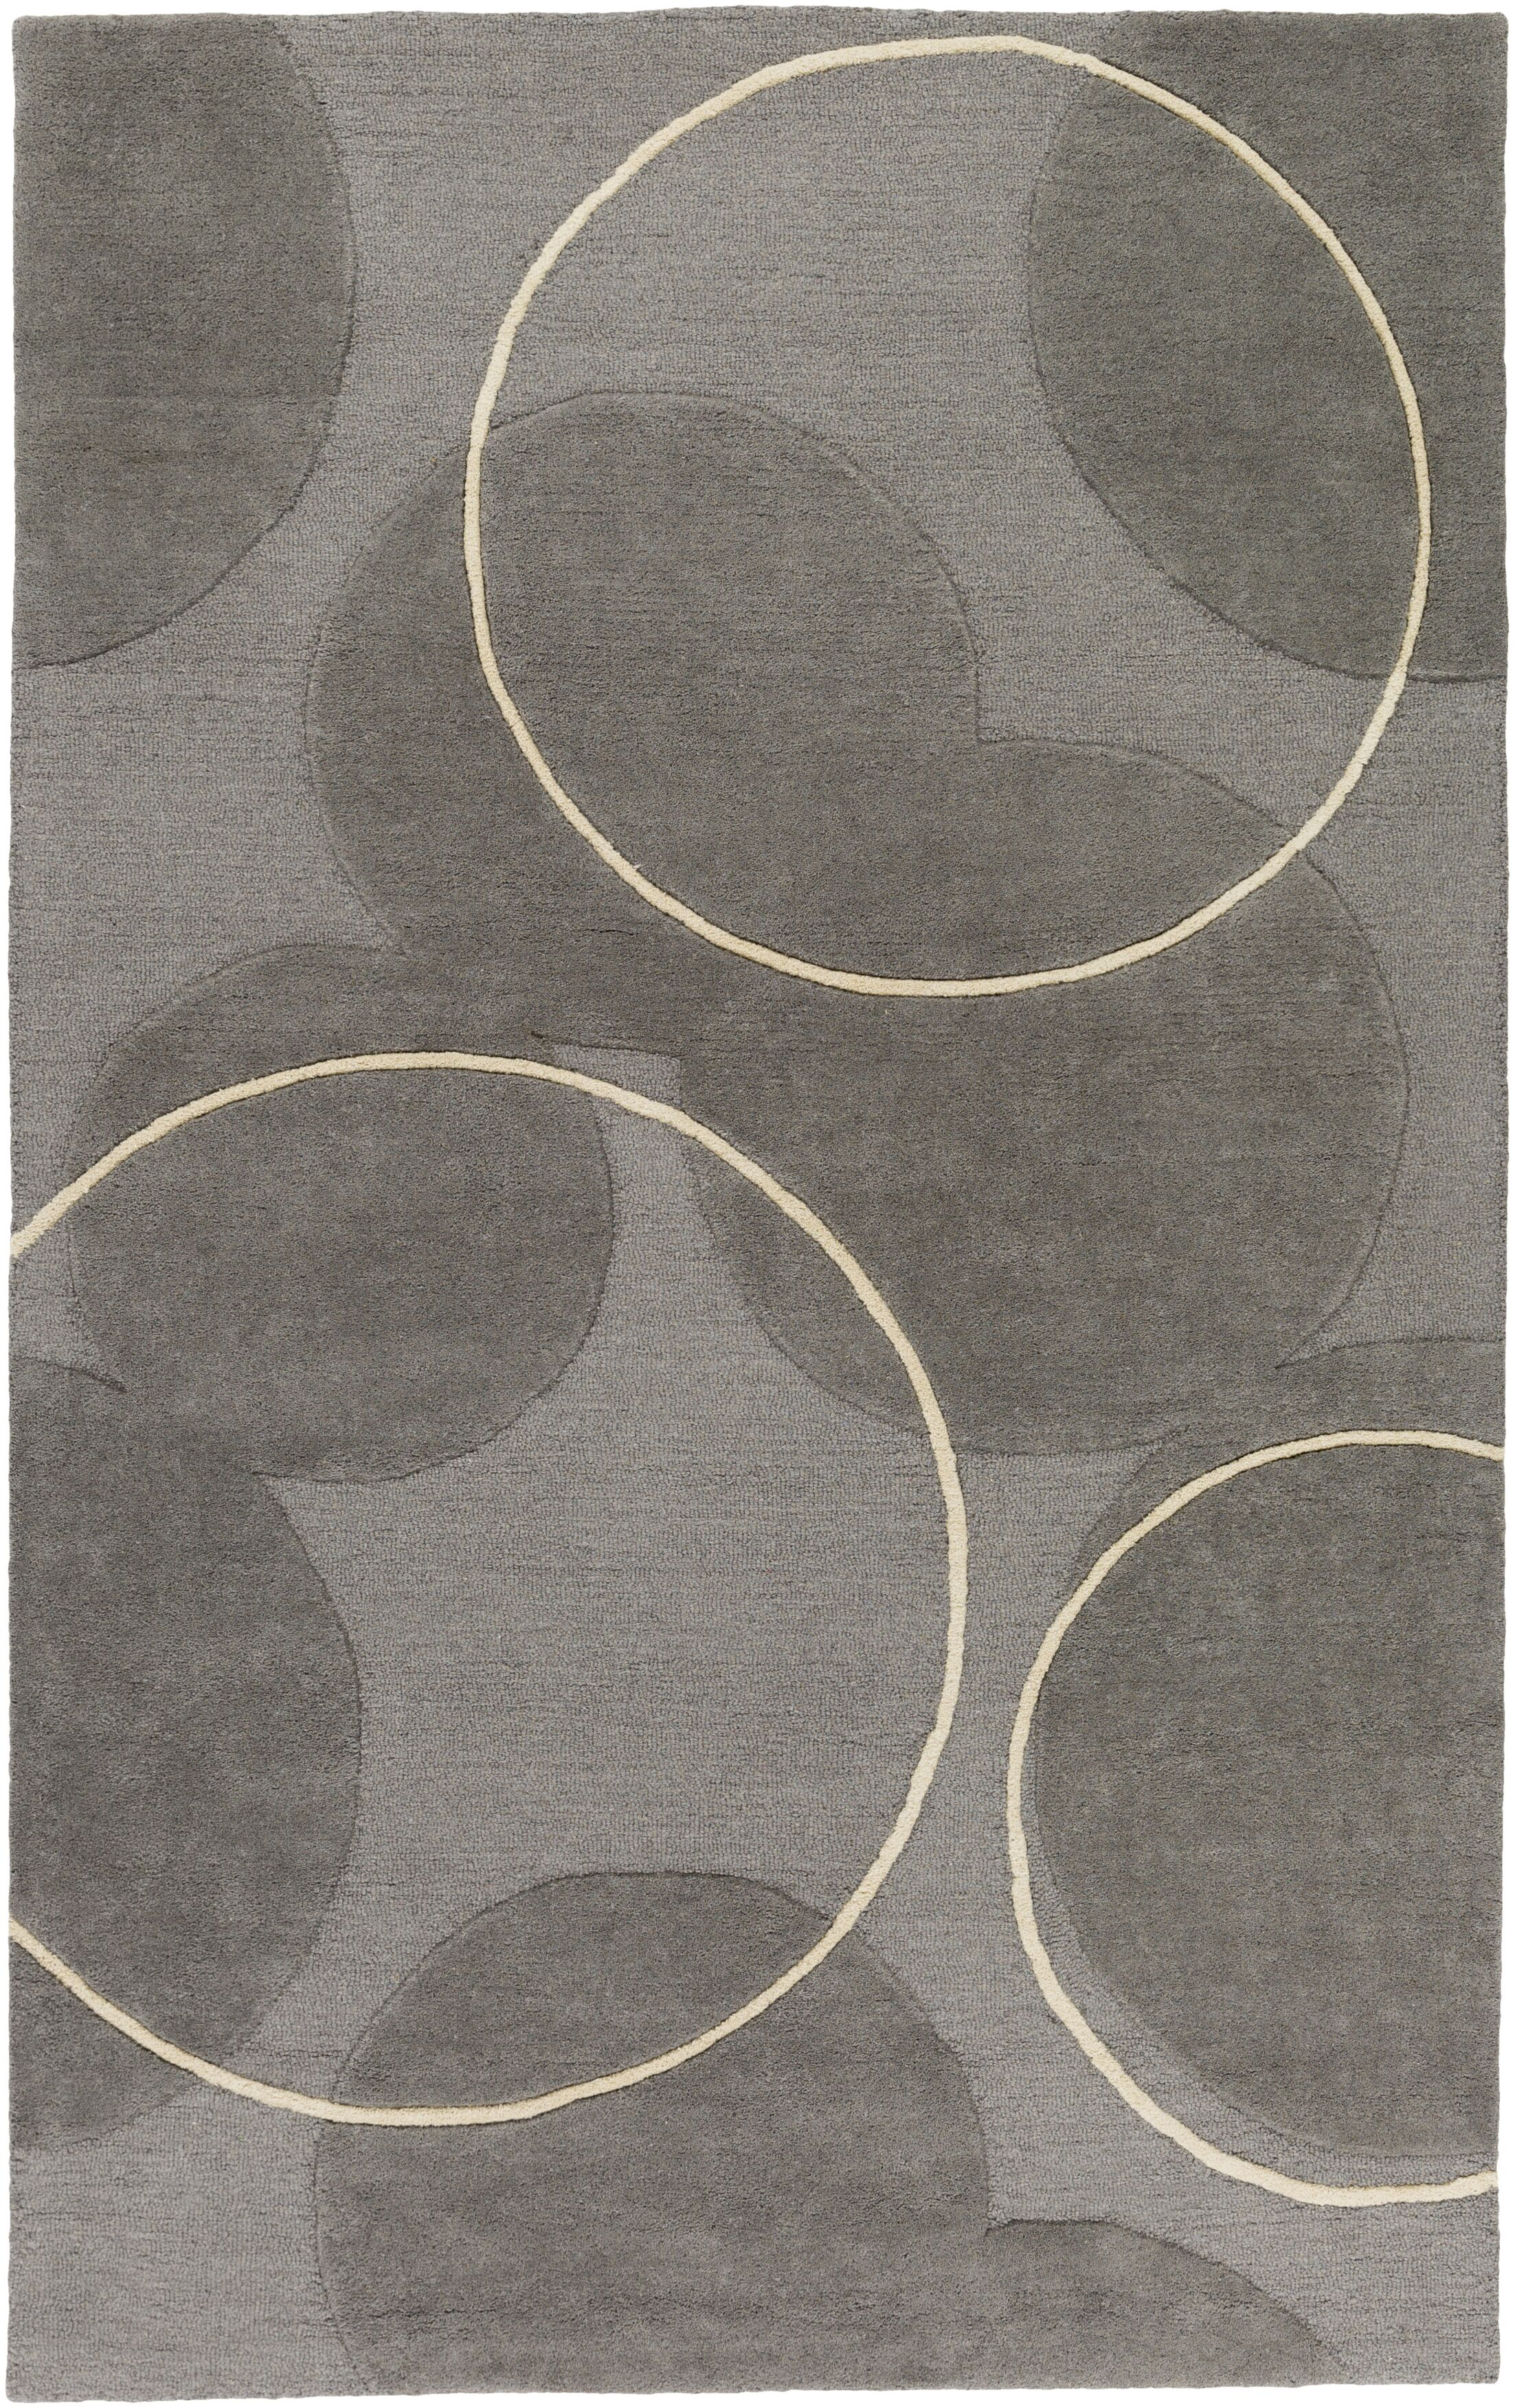 Labarbera Hand-Tufted Gray/Ivory Area Rug Rug Size: Rectangle 5' x 8'